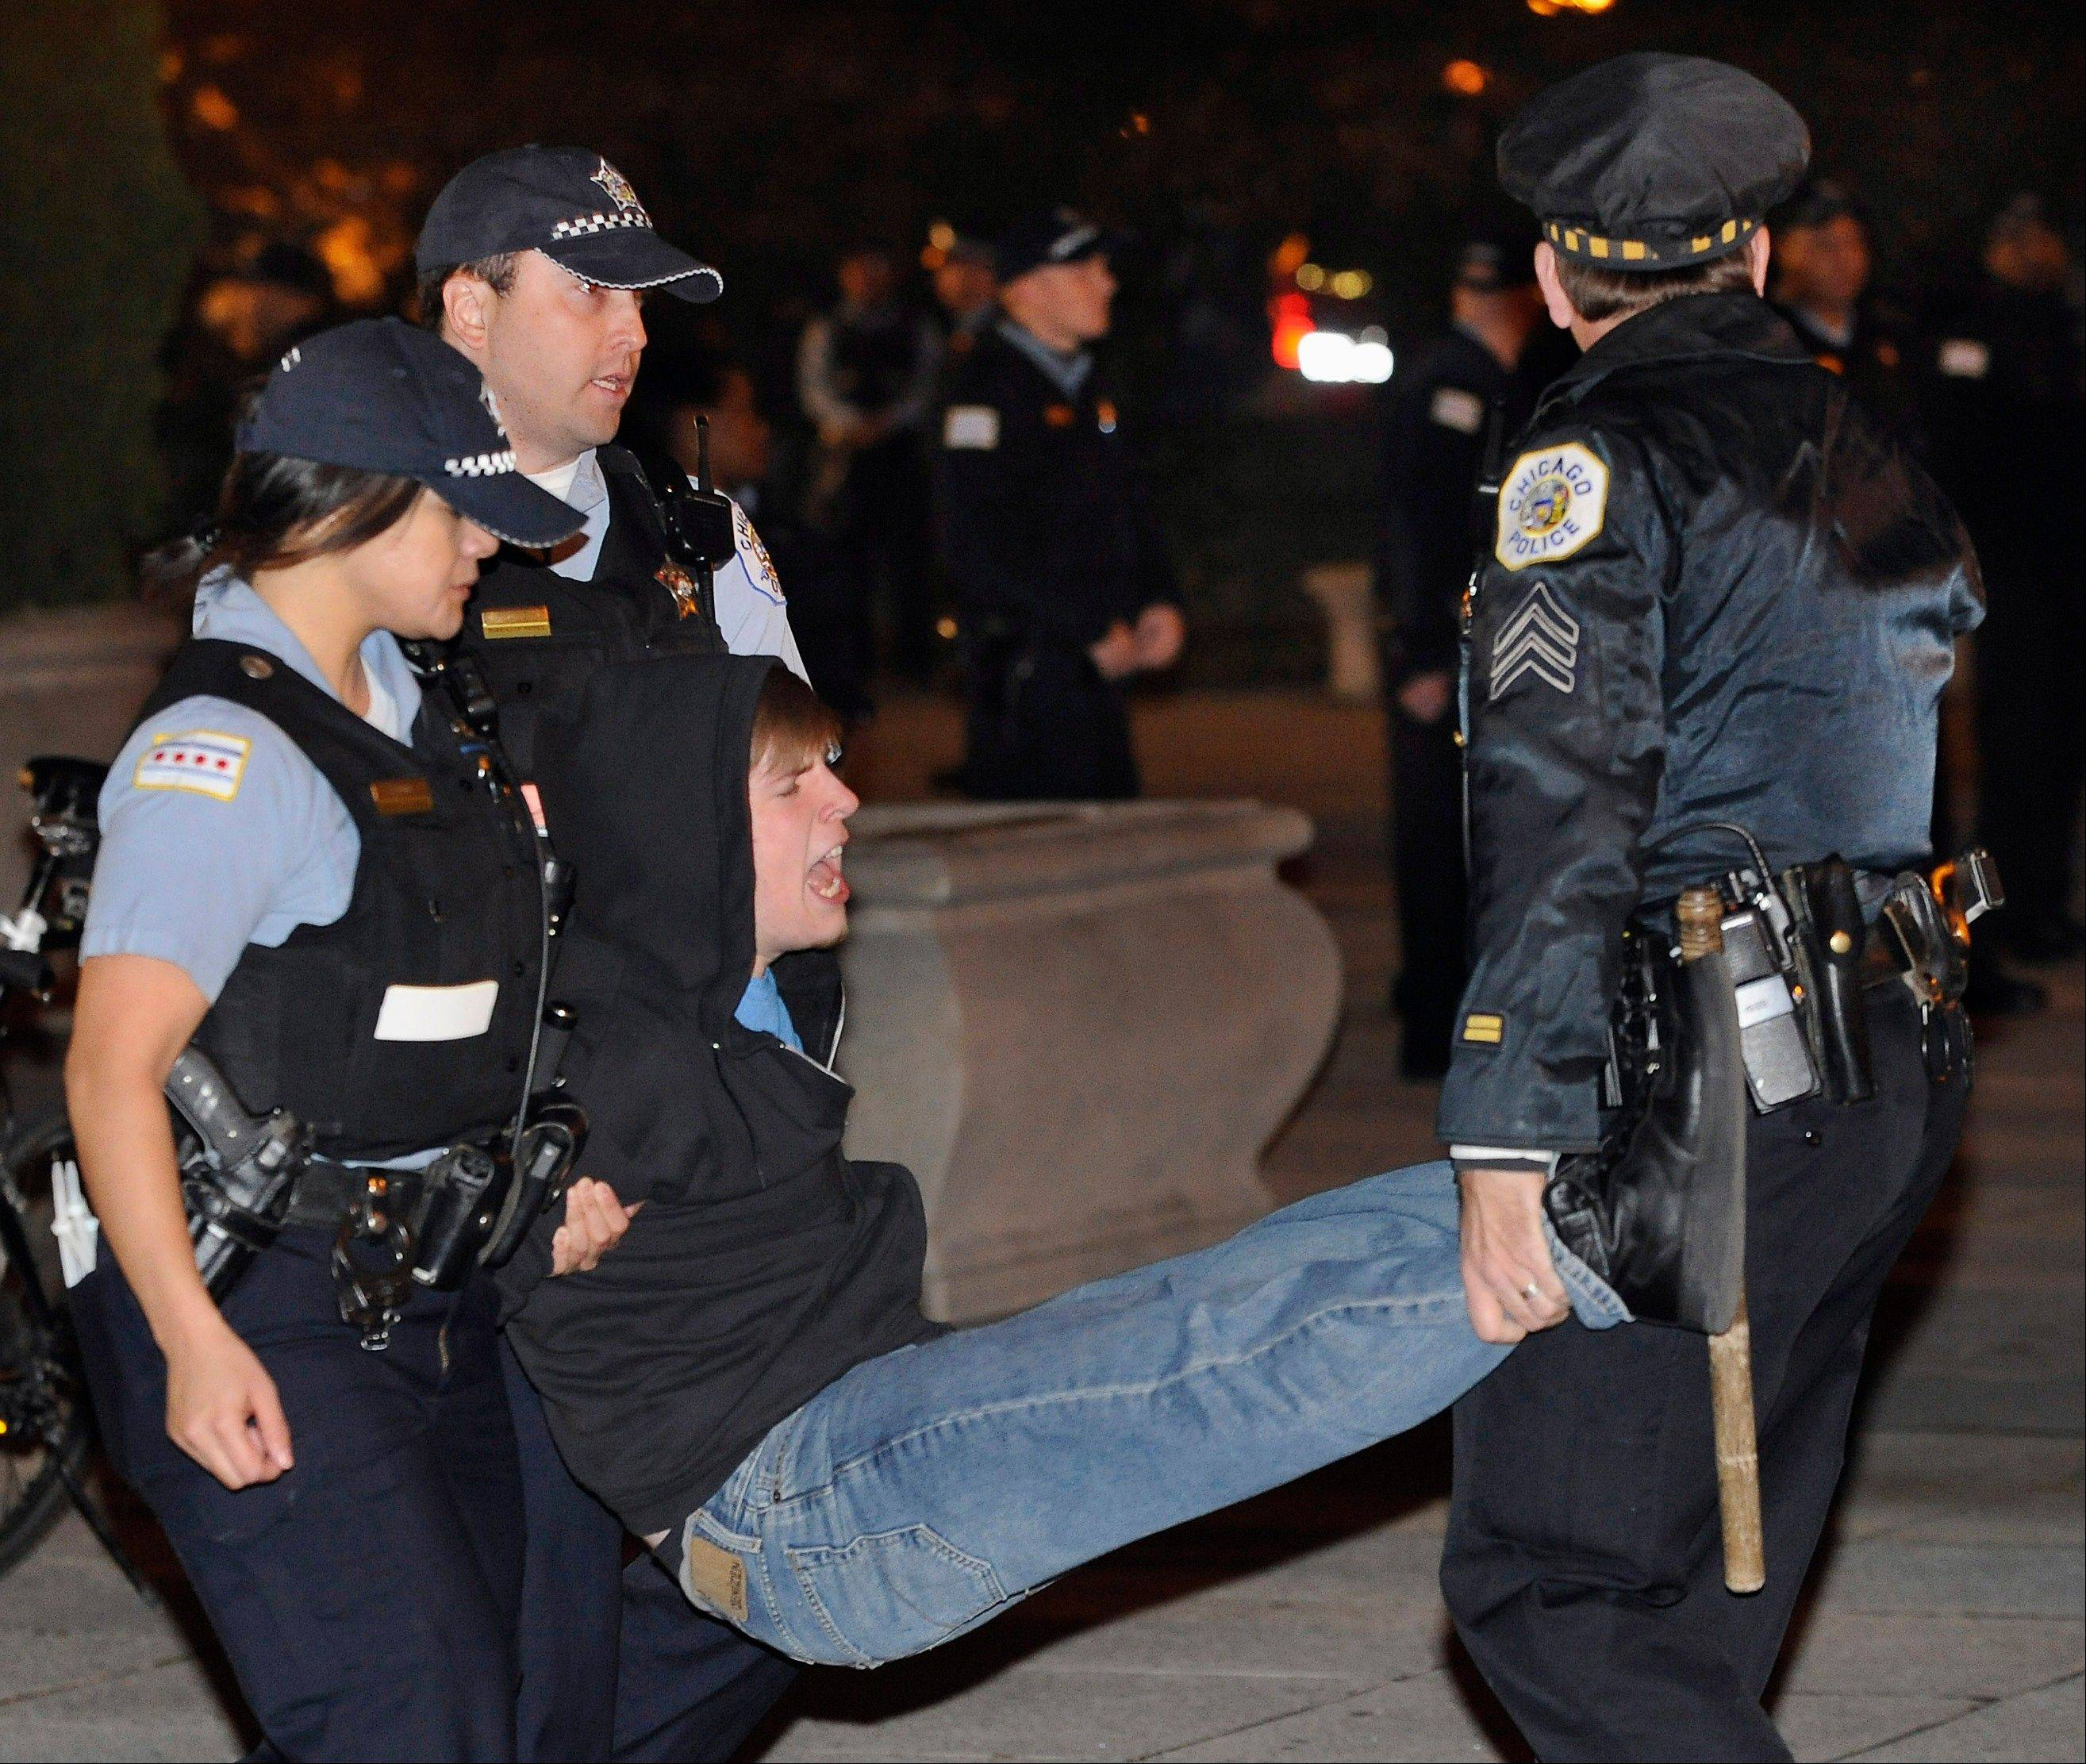 A protester gets arrested during an Occupy Chicago march and protest Oct. 23, 2011, in Grant Park in Chicago. More than 90 arrests came after members of the group refused to take down tents and leave Grant Park when it closed at 11 p.m.